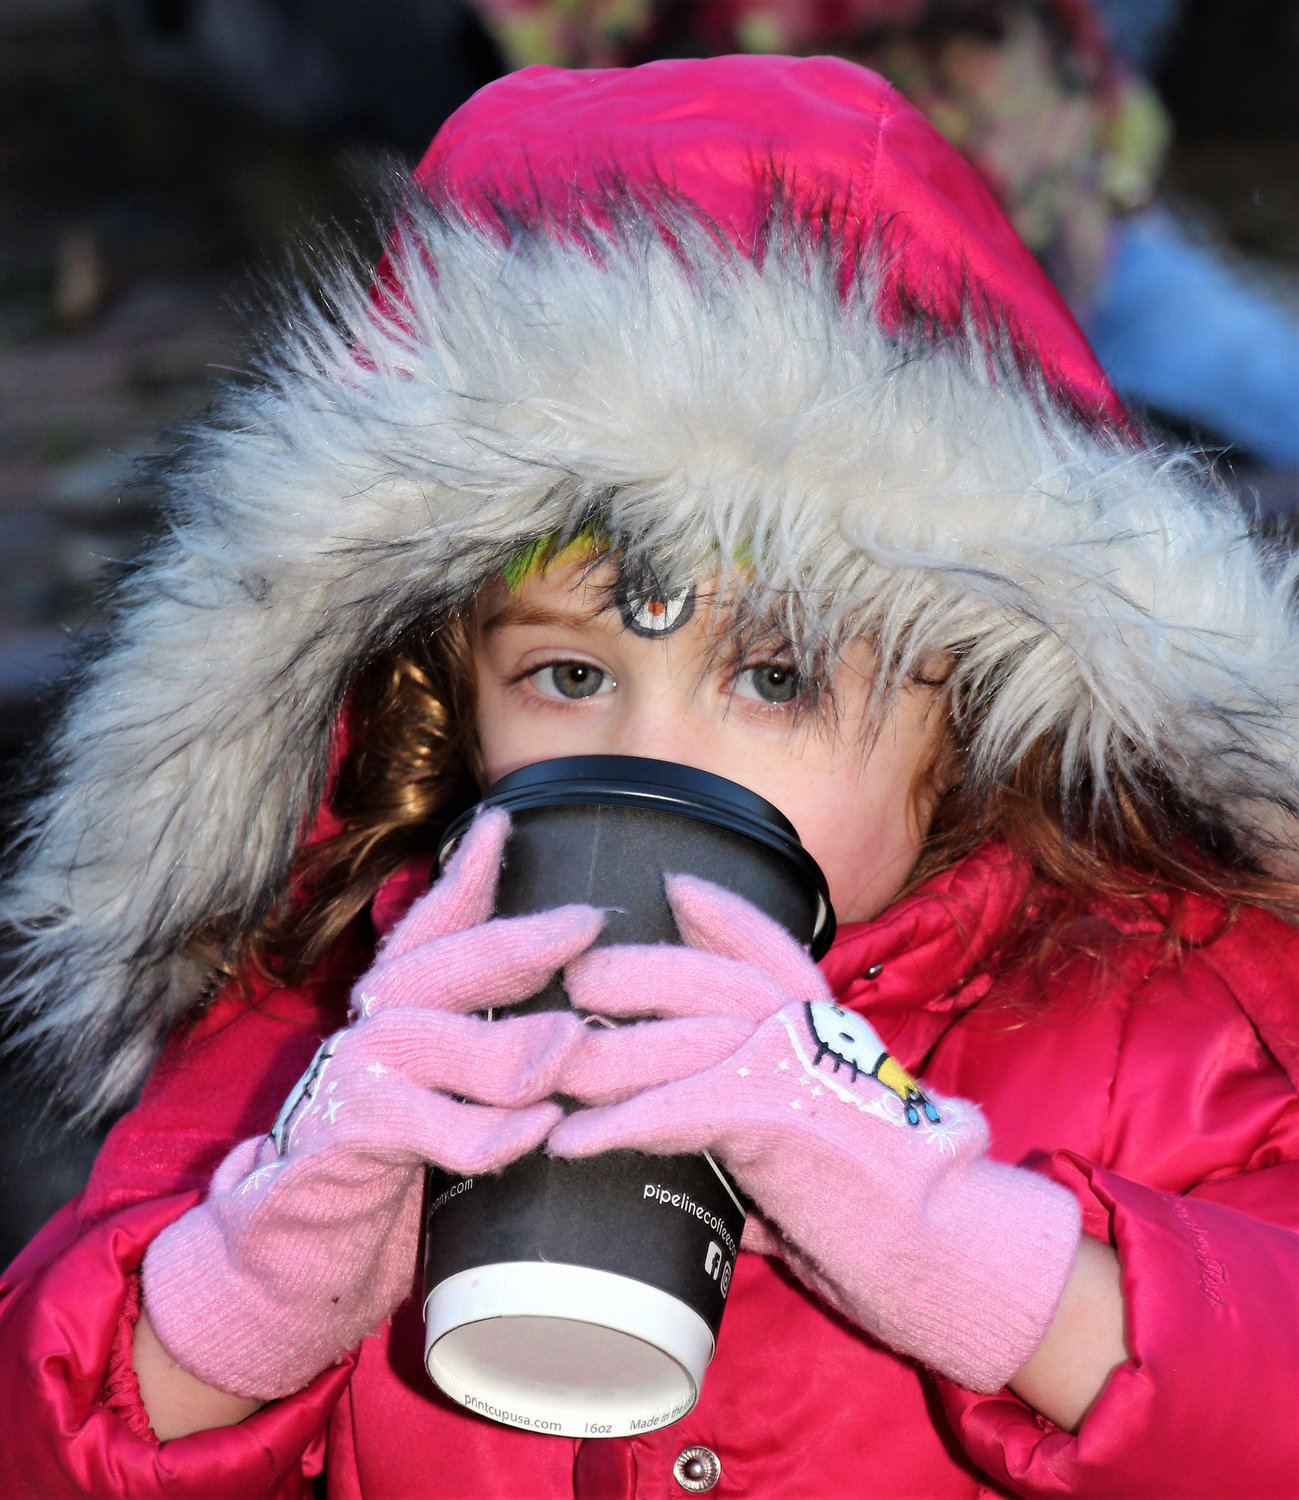 Hot beverages like coffee and hot chocolate were served to fend off the bitter chill in the air on Saturday, Nov. 30 at the Wantagh Preservation Society. Mackenzie Henshay, 31/2, kept warm sipping hot cocoa.